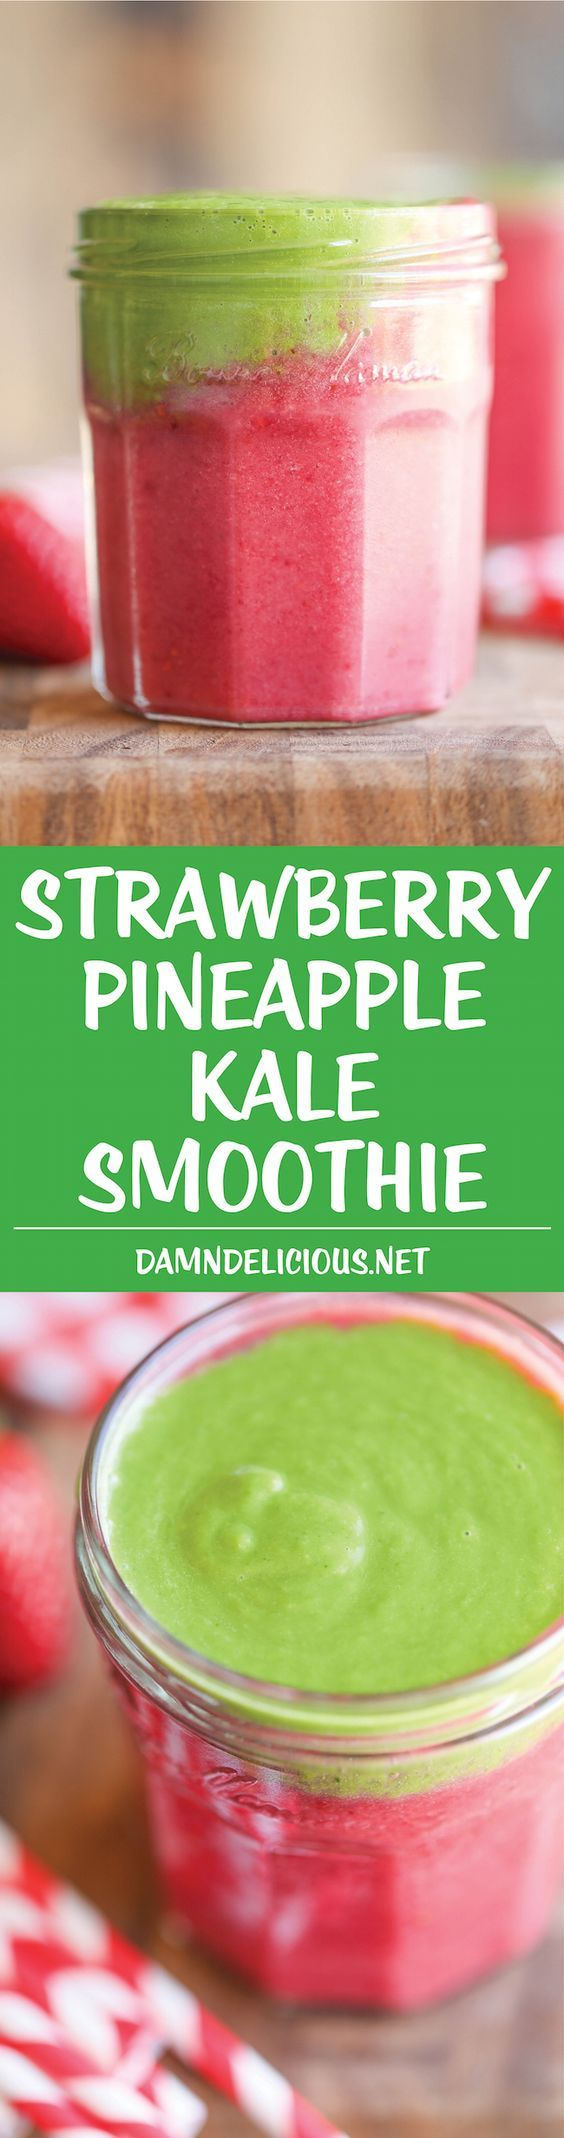 Strawberry Pineapple Kale Smoothie - A power-packed nutritious smoothie that doesn't even taste healthy! An absolute must for your mornings!